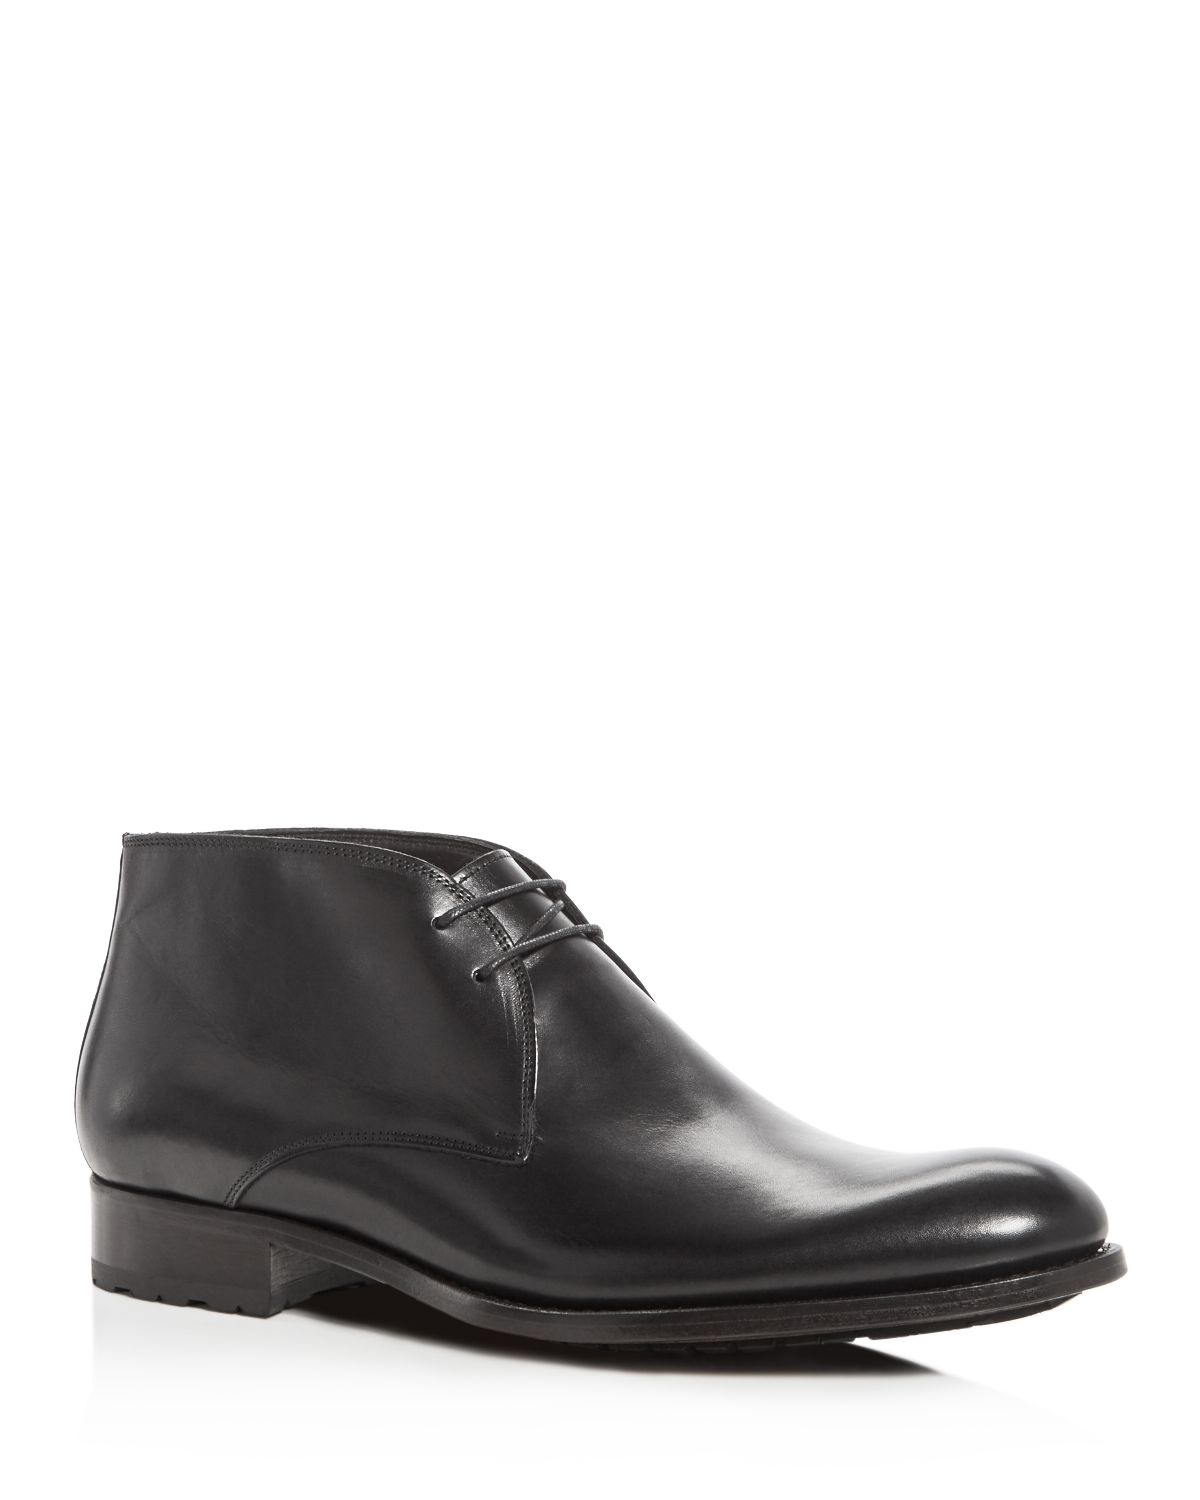 To Boot Men's Norwalk Leather Chukka Boots